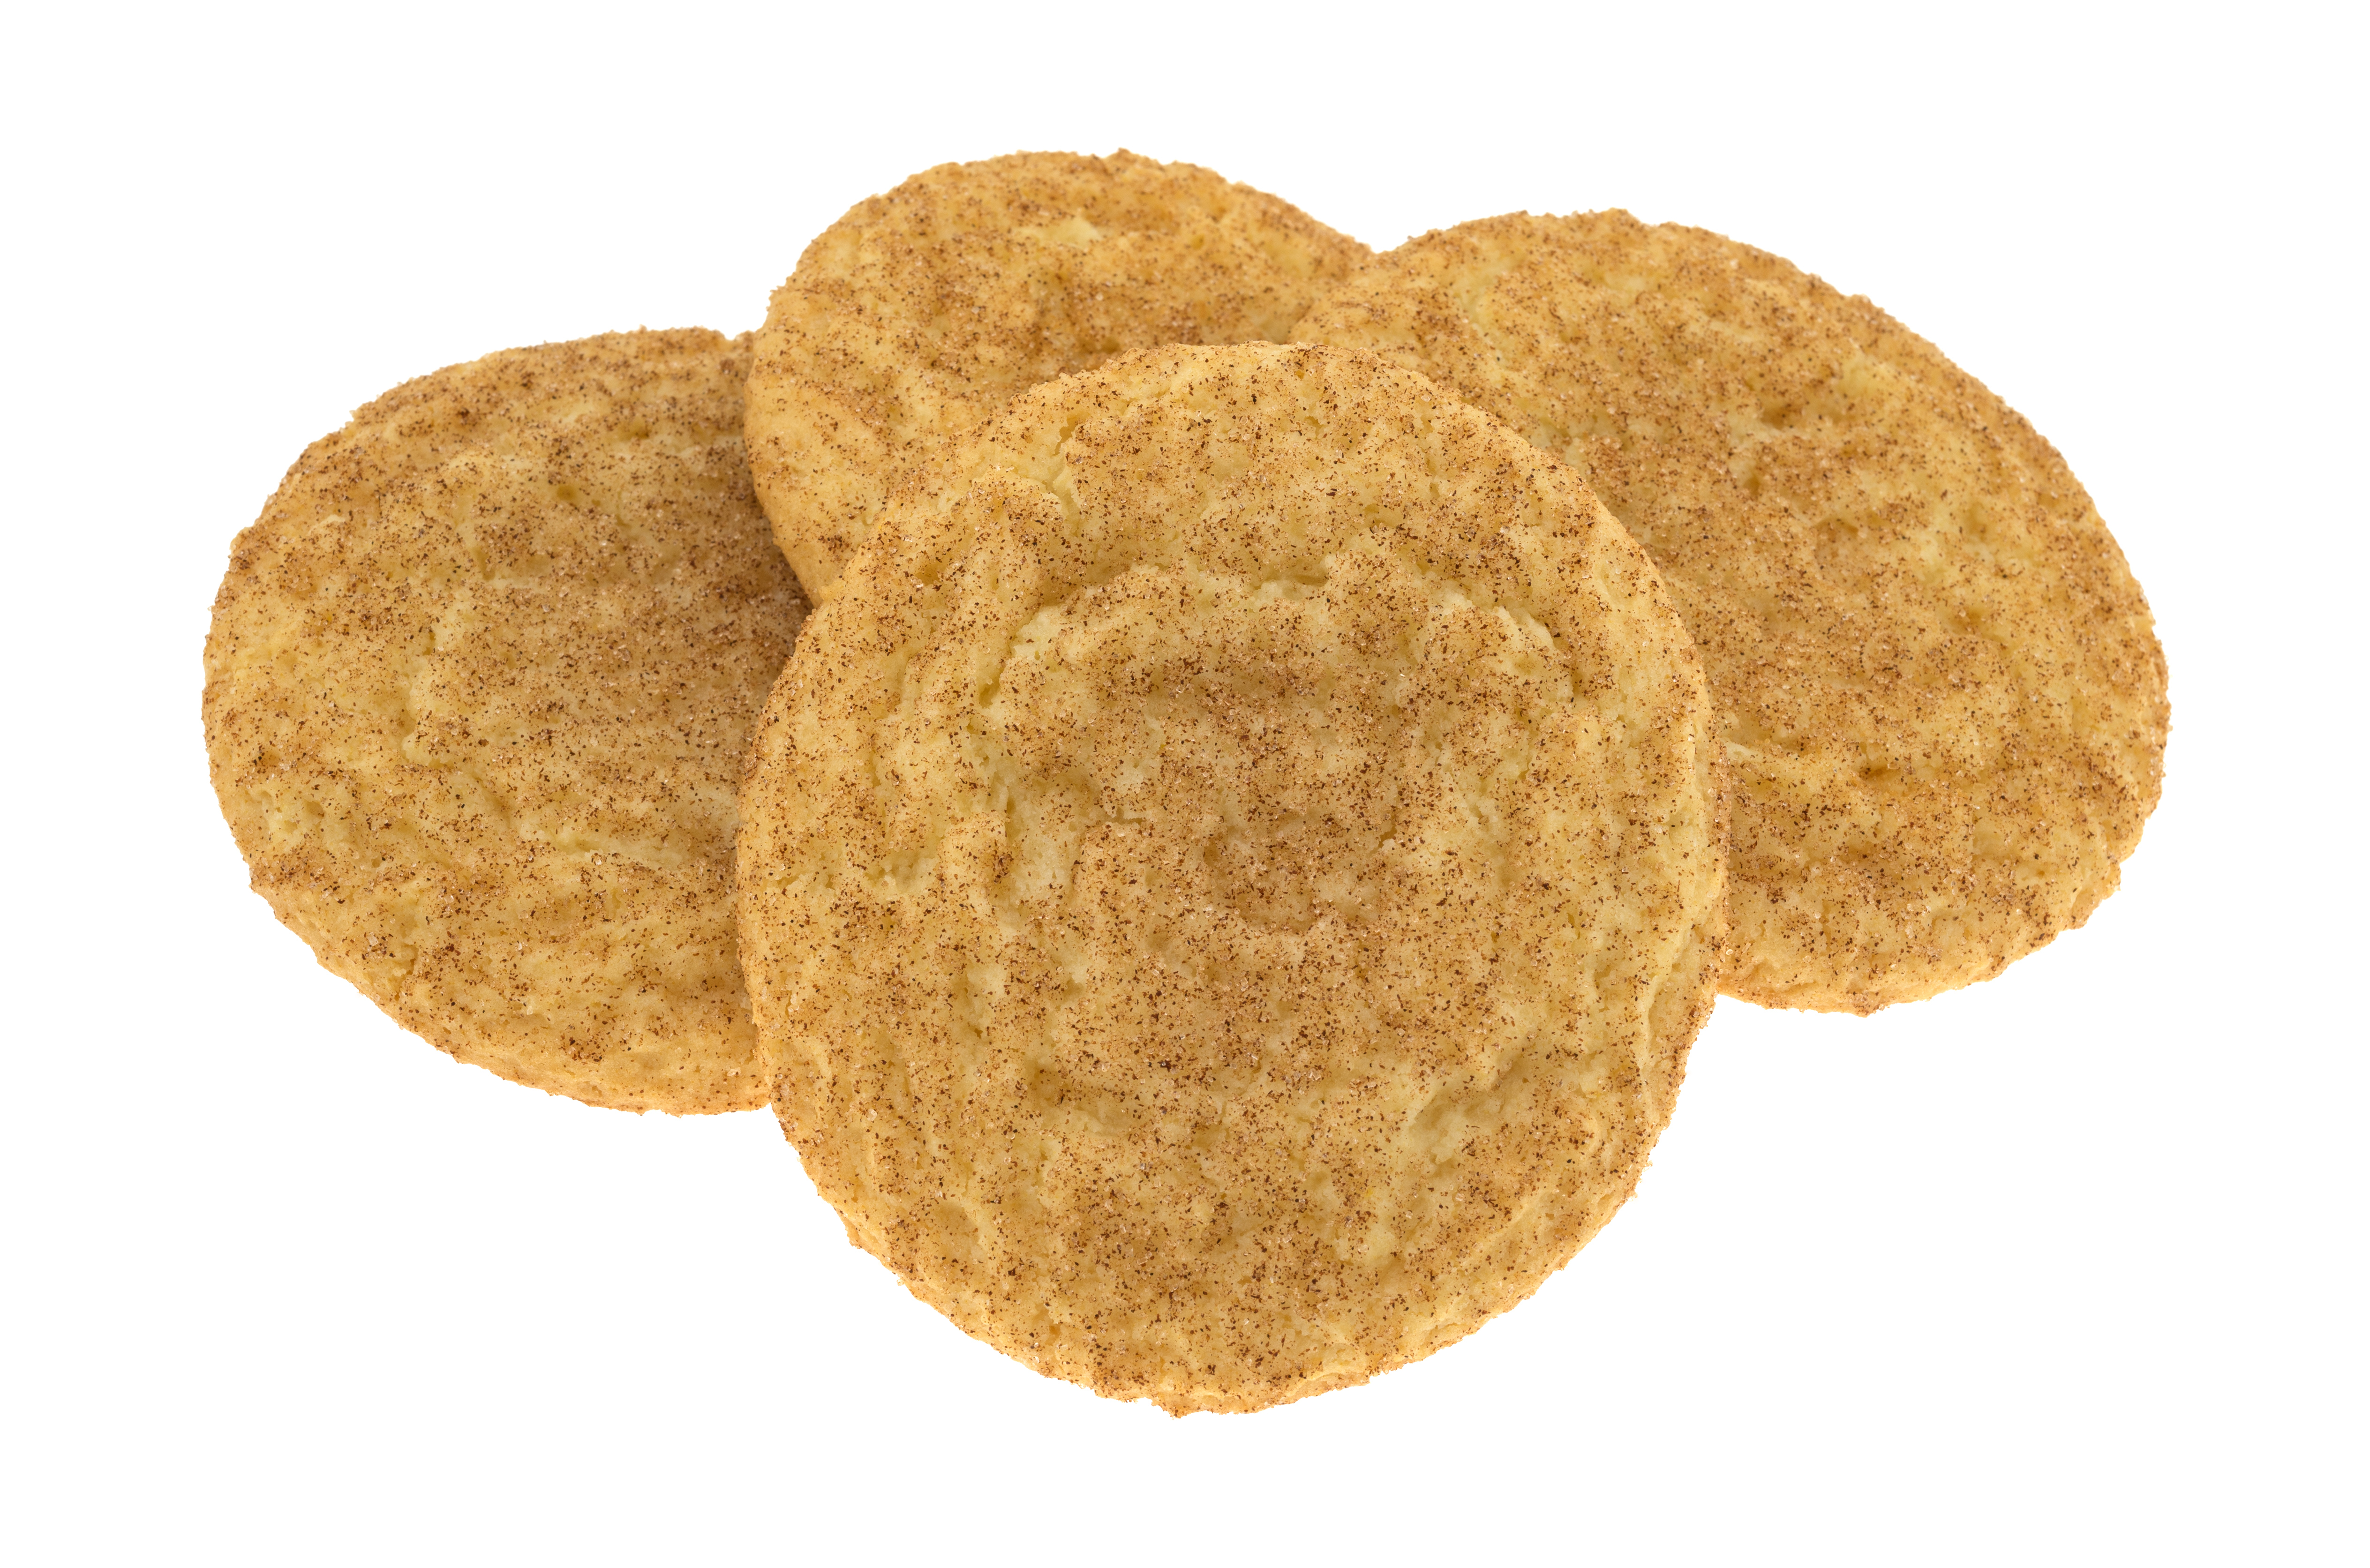 Side view of a group of baked snickerdoo